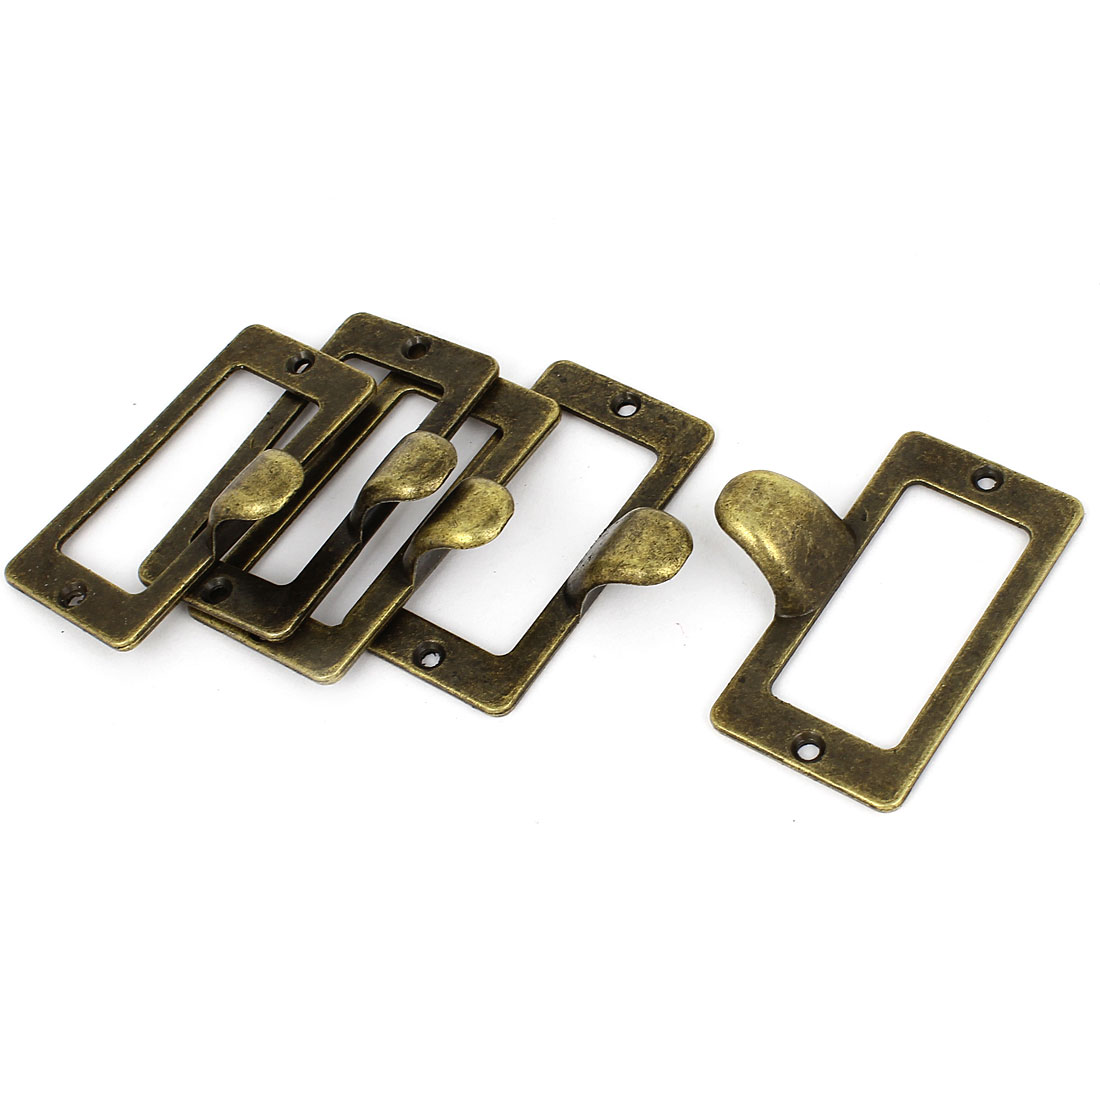 Home Cabinet Drawer Cupboard Door Label Style Pull Handle Bronze Tone 5 Pcs